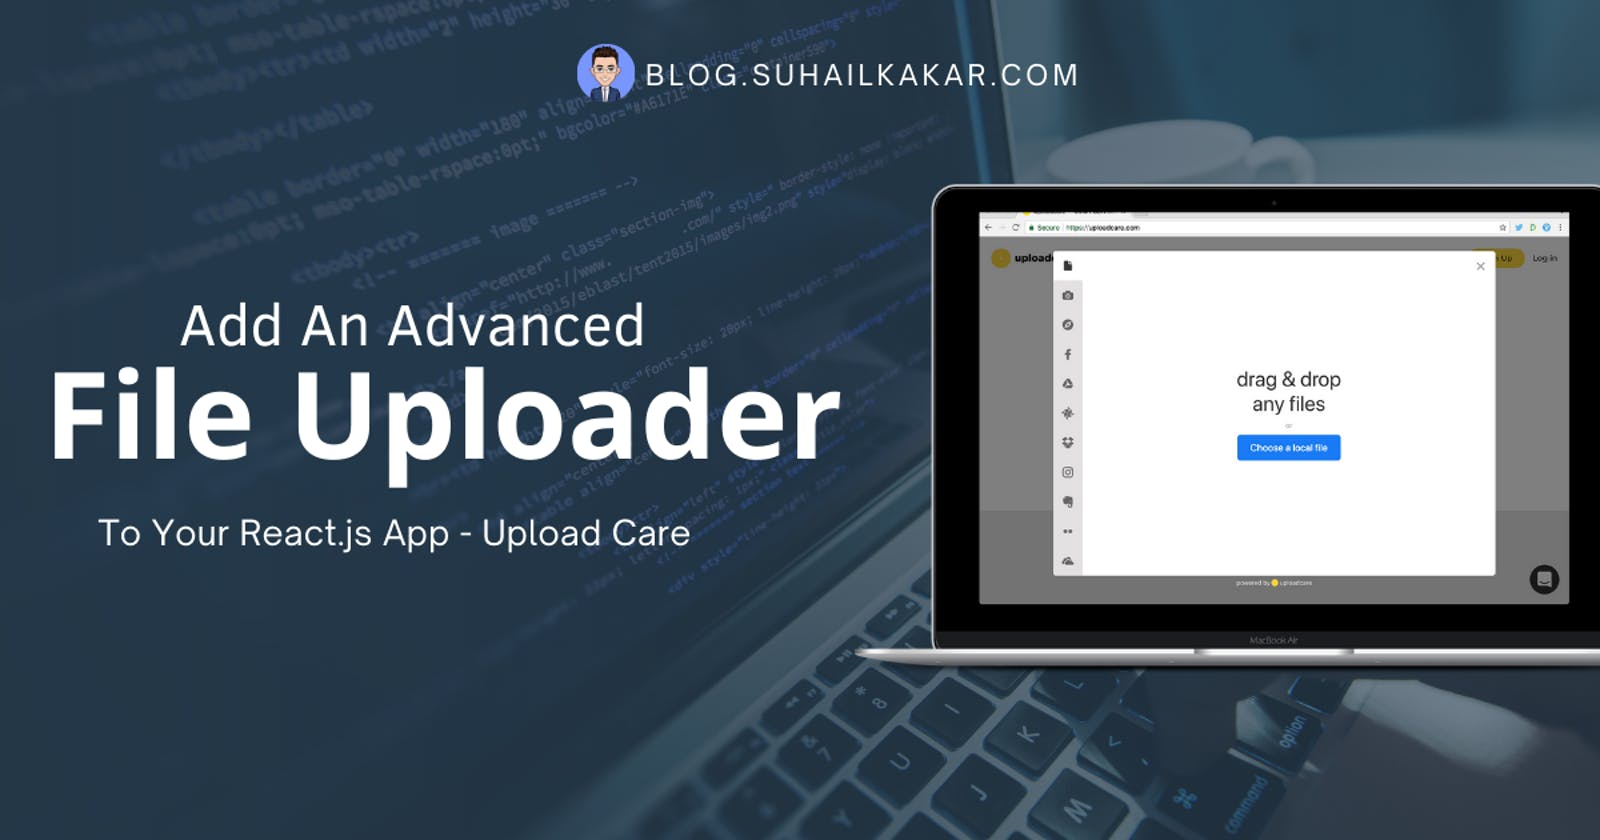 Add An Advanced File Uploader To Your React.js App - Uploadcare